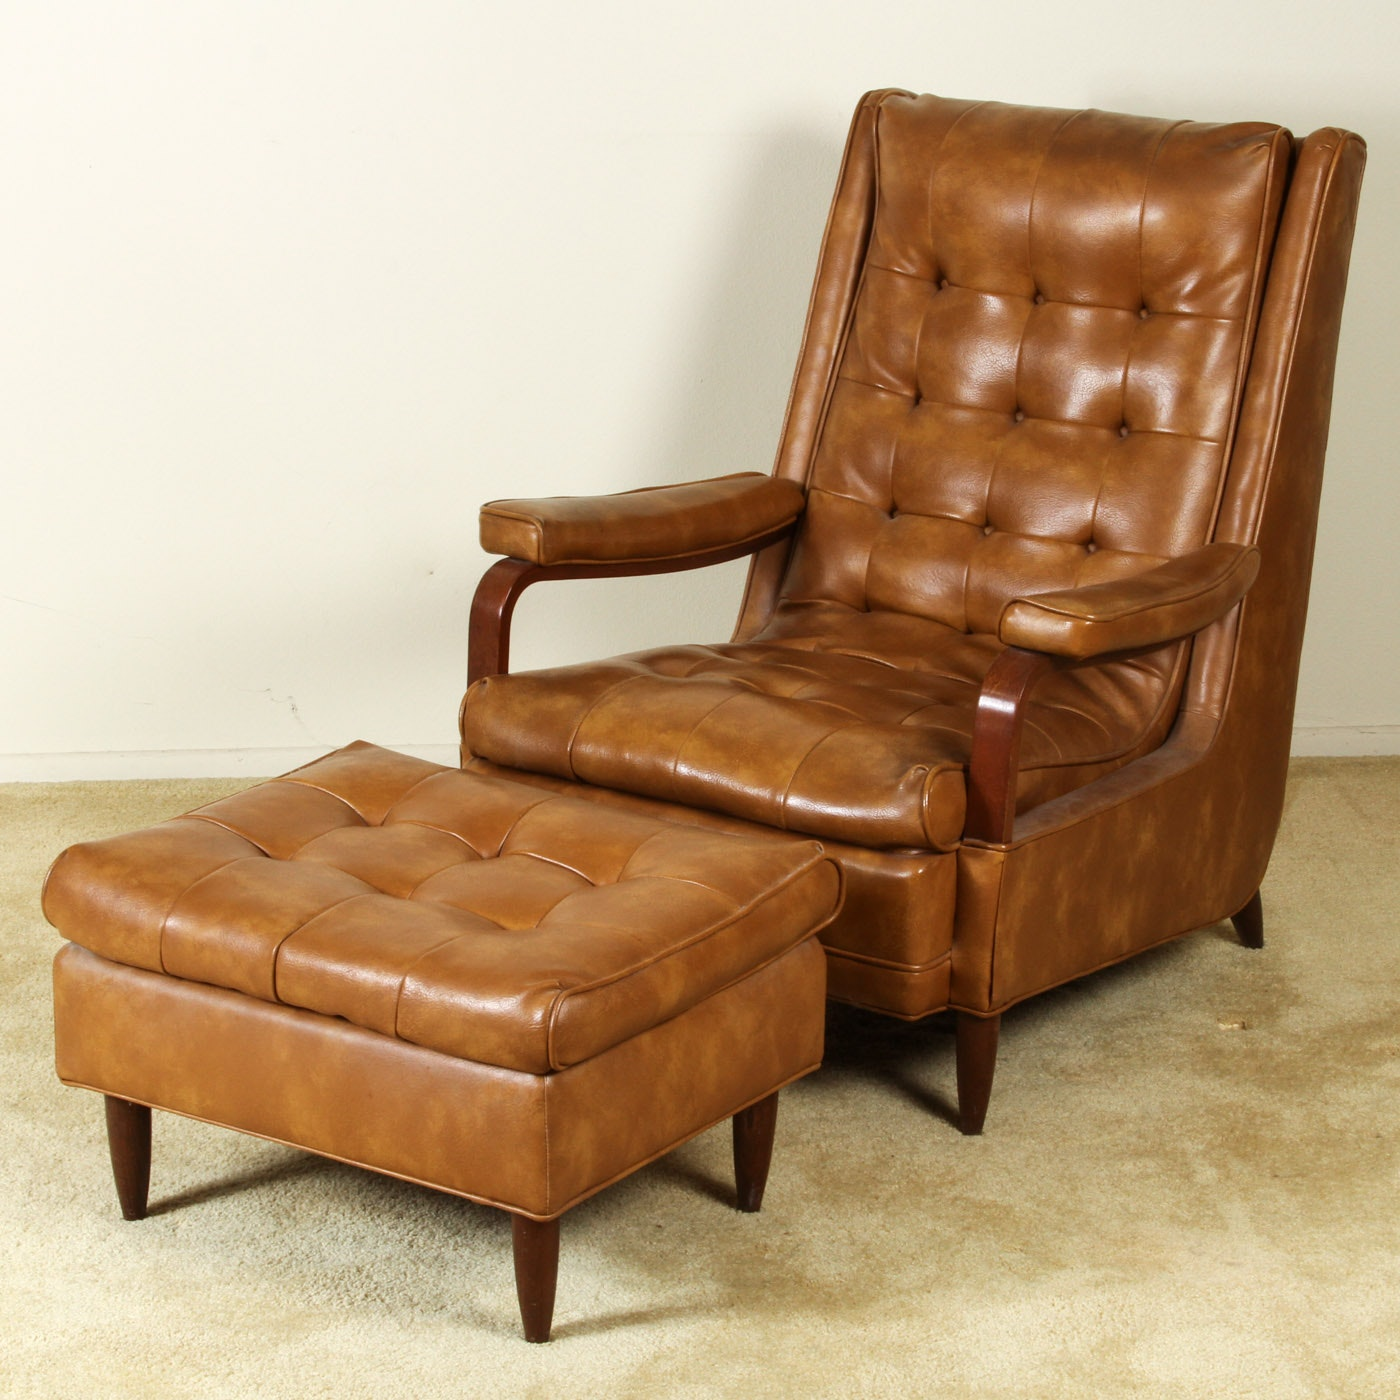 Vintage Brown Leather Chair And Ottoman By Barker Bros.